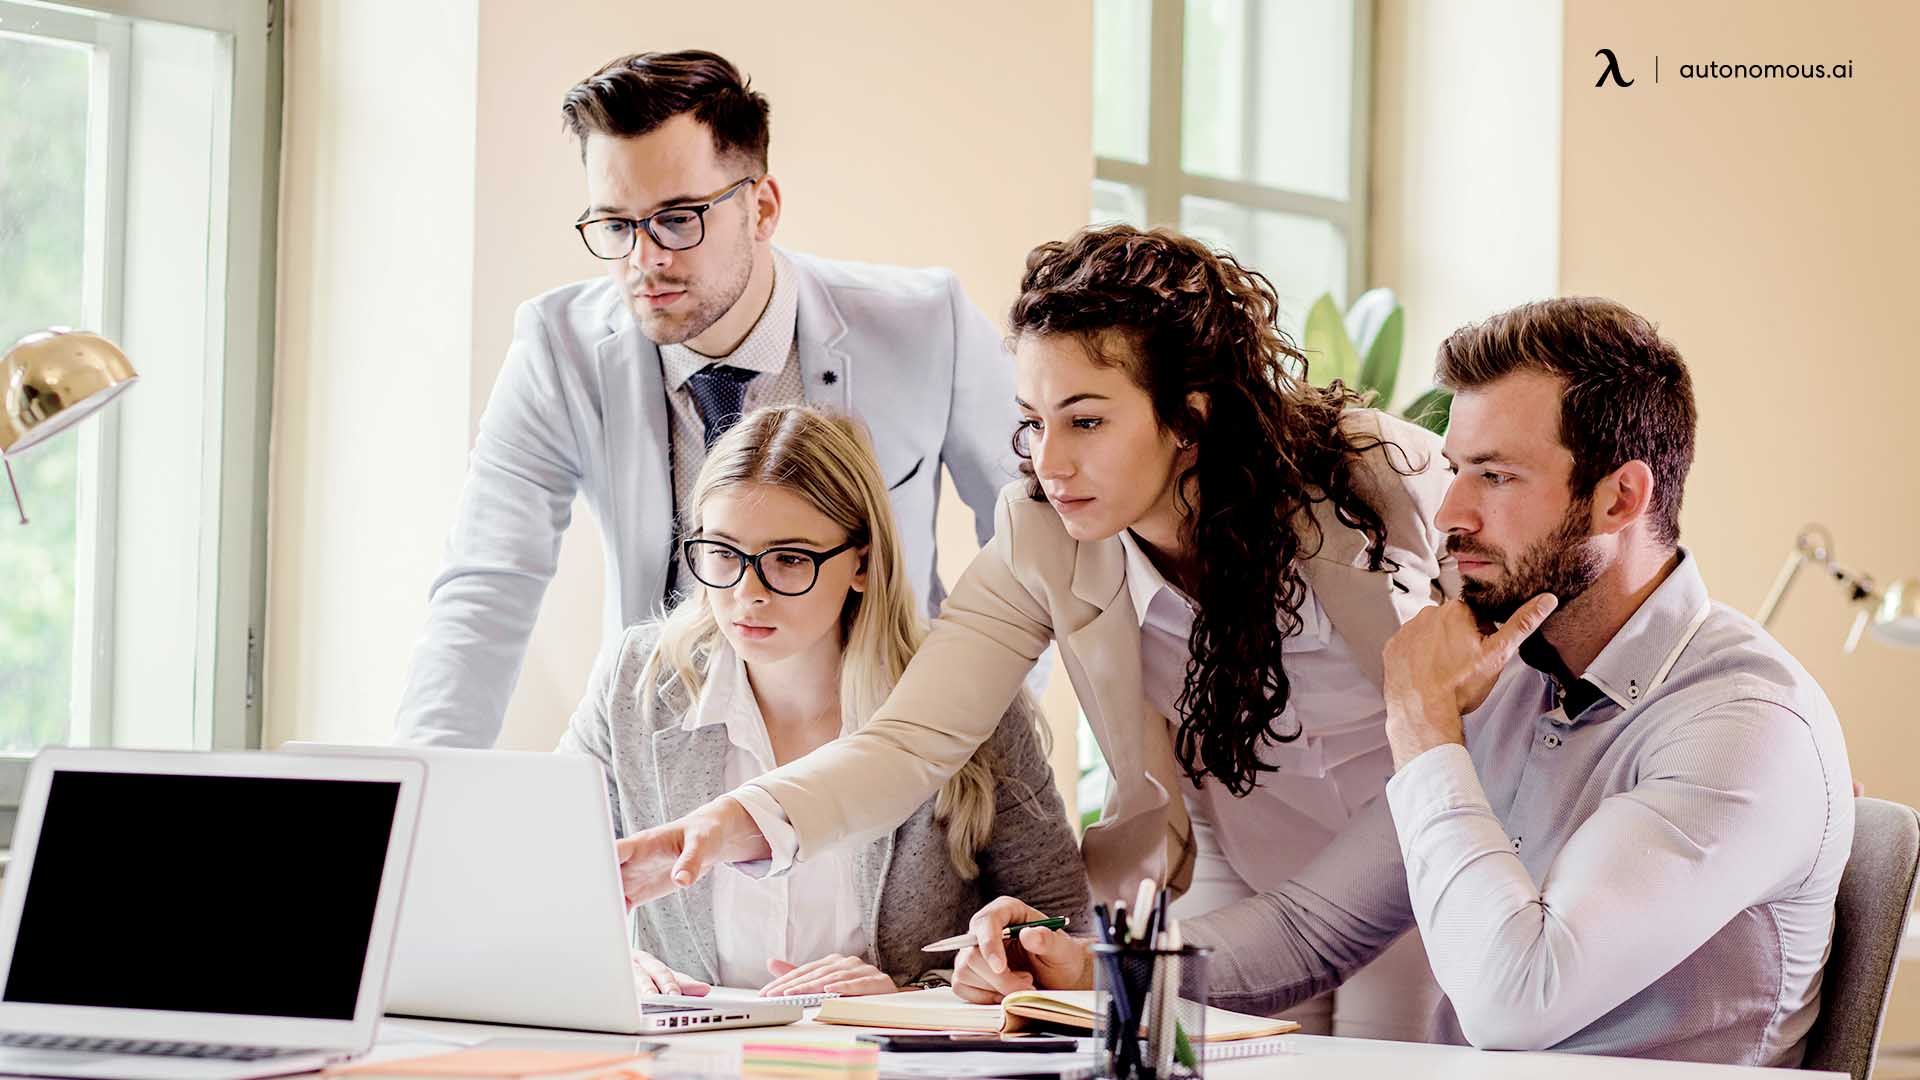 How Can Managers Improve the Benefit of Hybrid Work